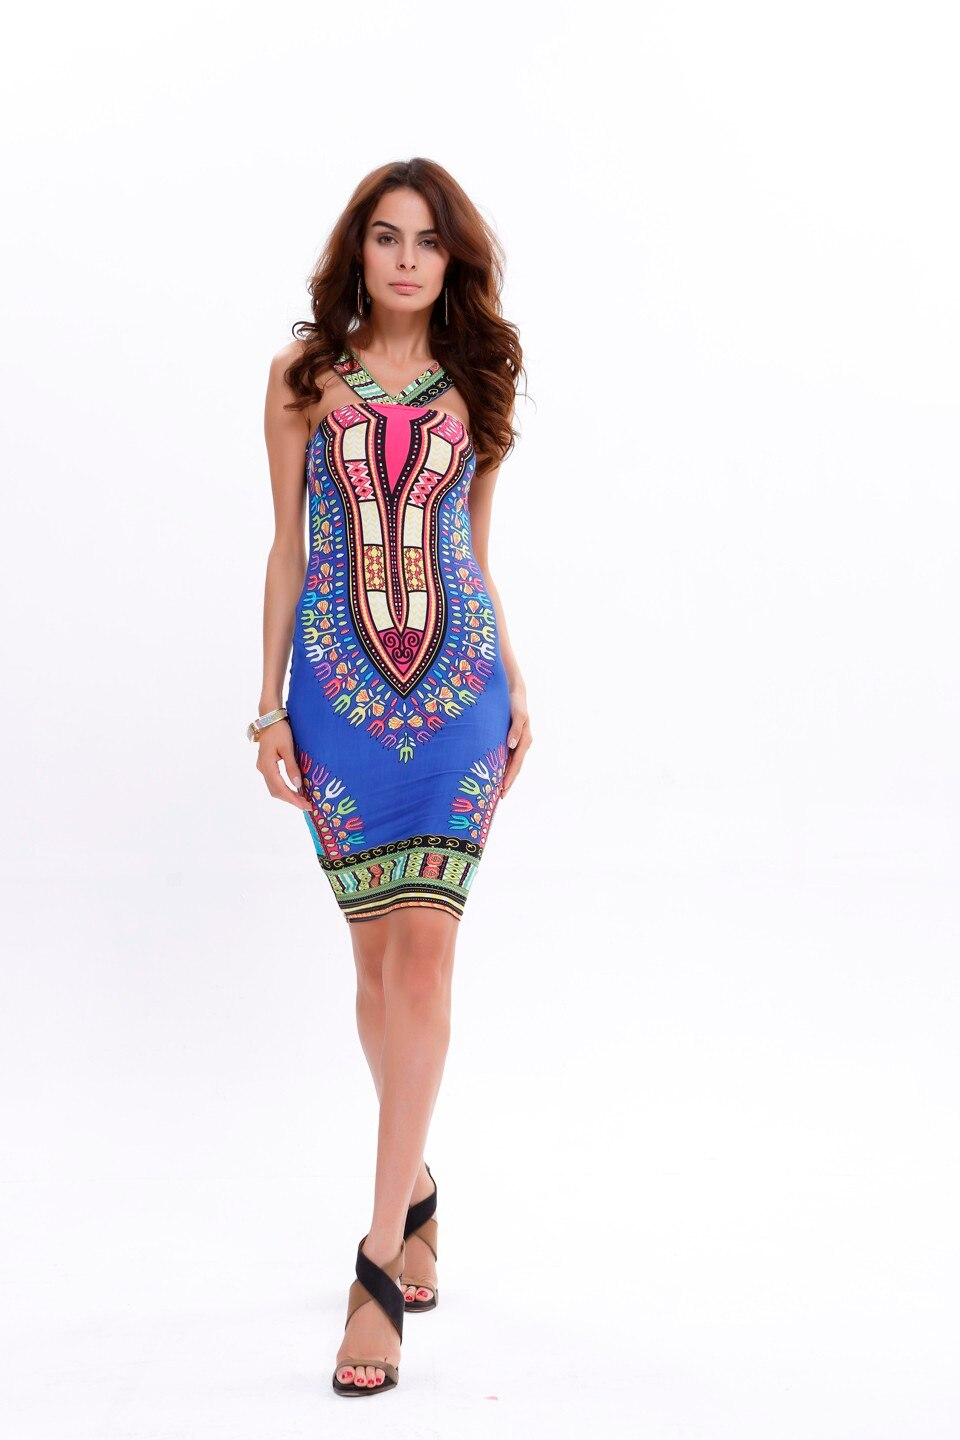 (fast shipping) Sexy Succunct African Tranditional Print Dashiki Bohemian Backless Black Daisy Sexy Dress for lady